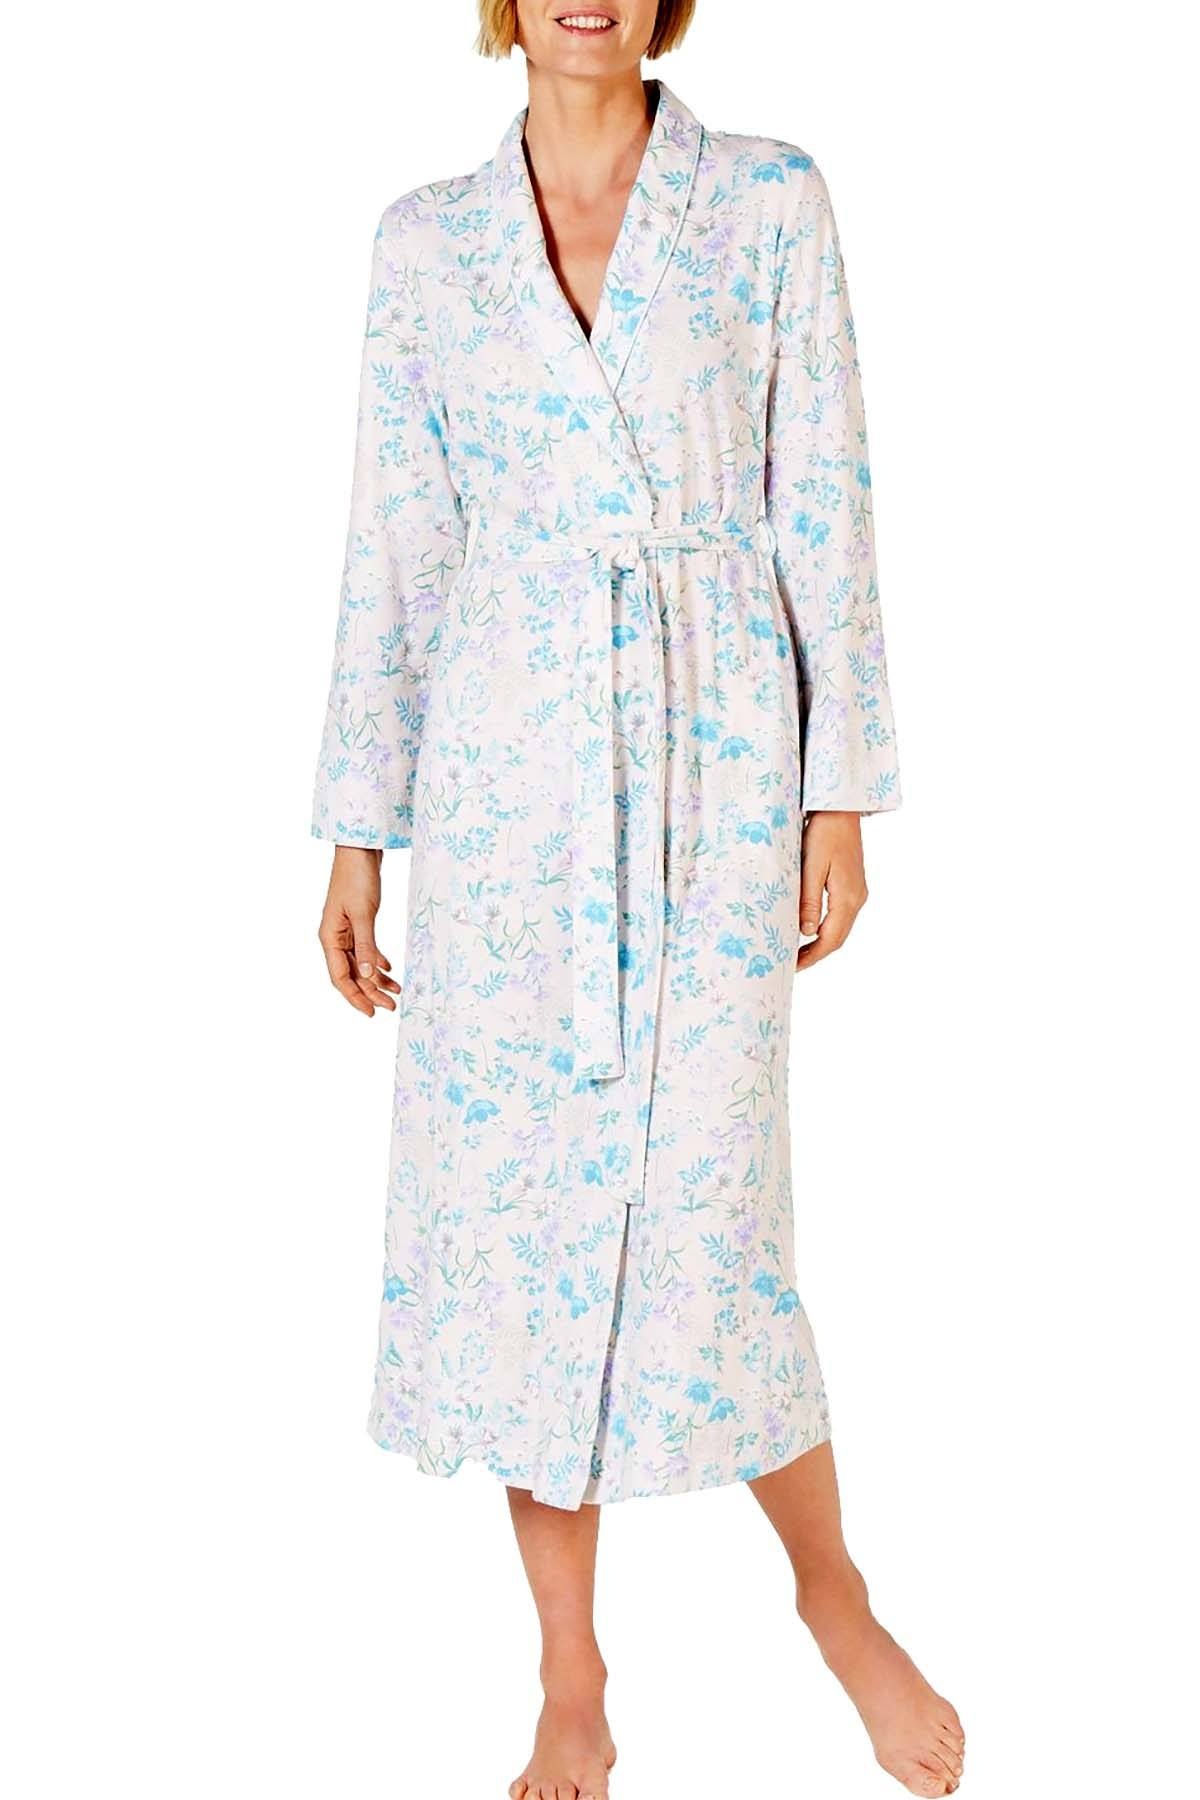 Miss Elaine Cottonessa Printed Long Sleeve Knit Robe in Botanical Floral